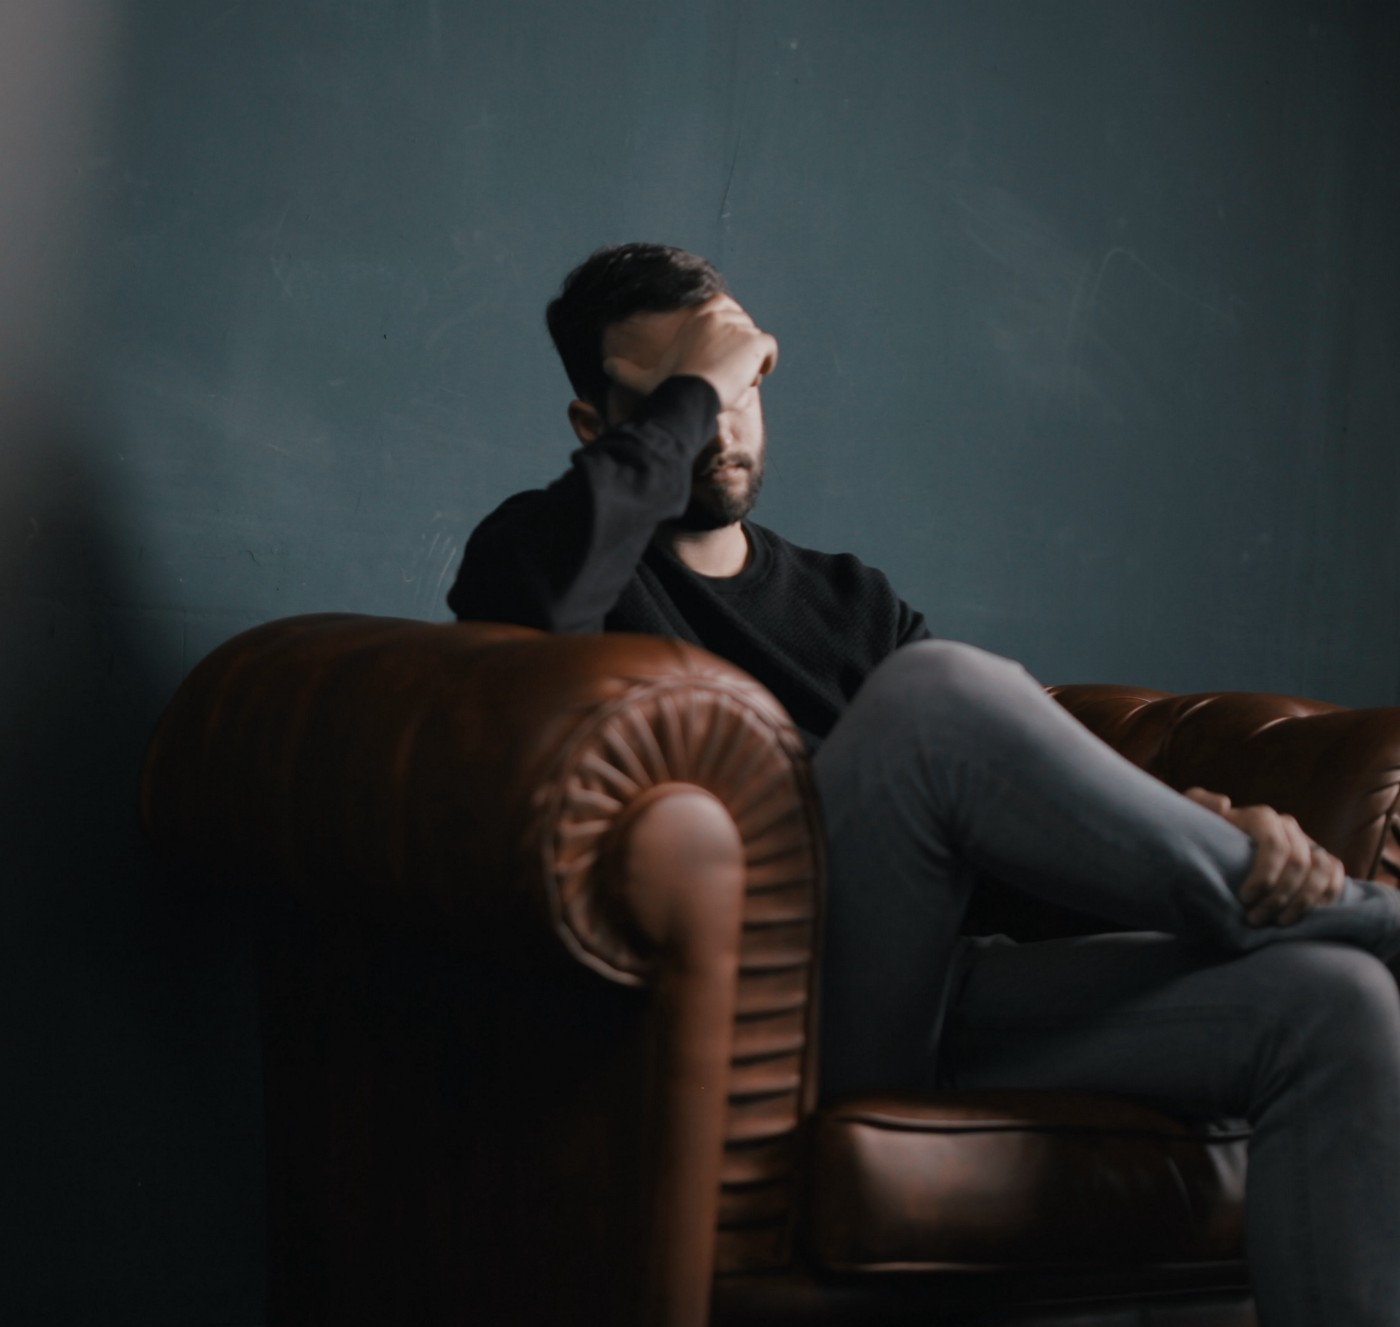 A dark mood/color palete photo with a young man sitting on a brown chair, with his head in his right hand in a forlorn fashion.